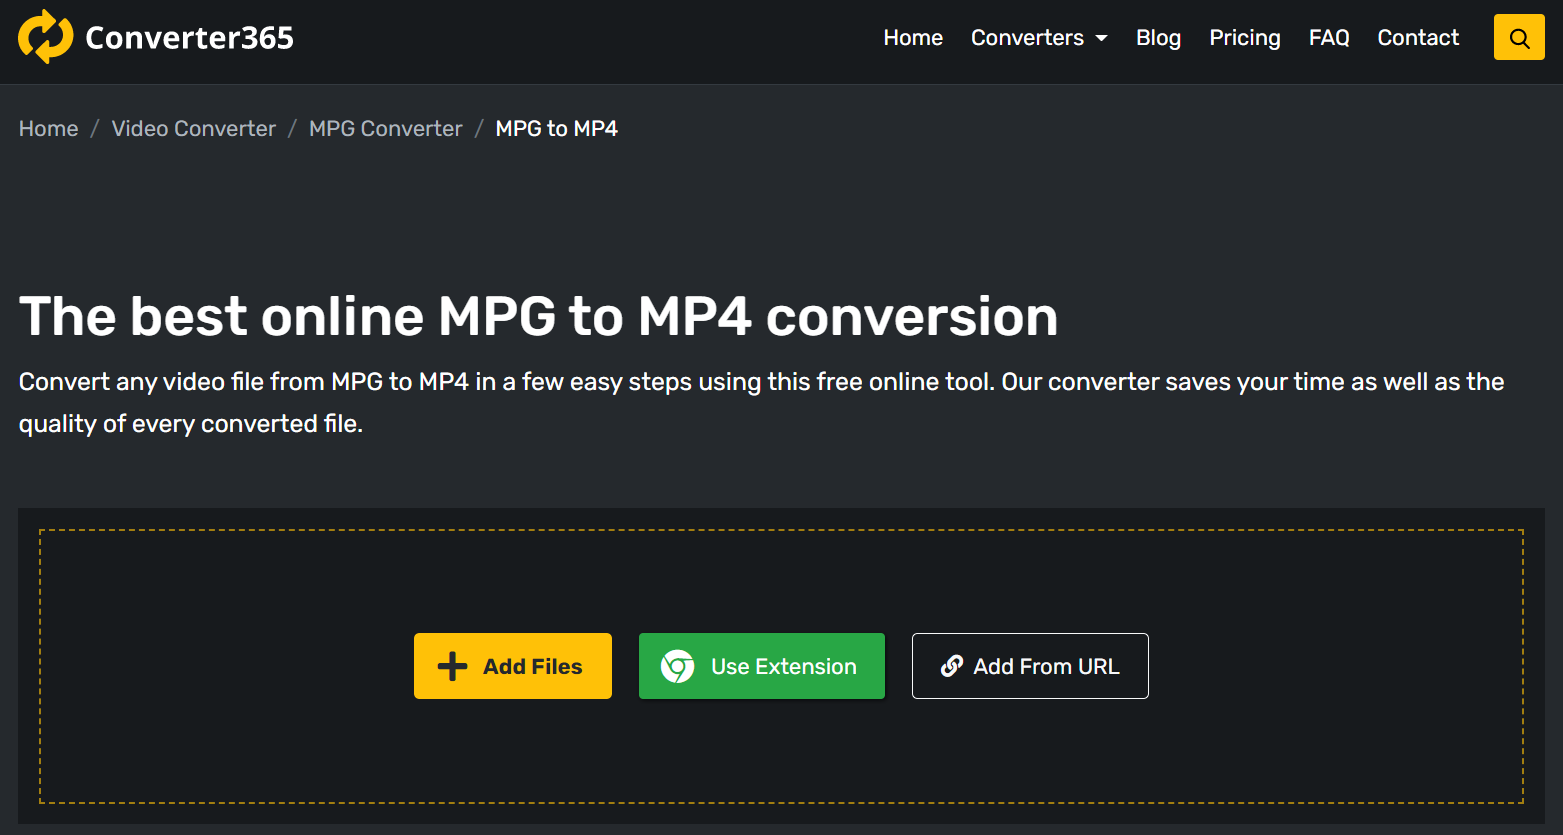 How to convert MPG online for free?